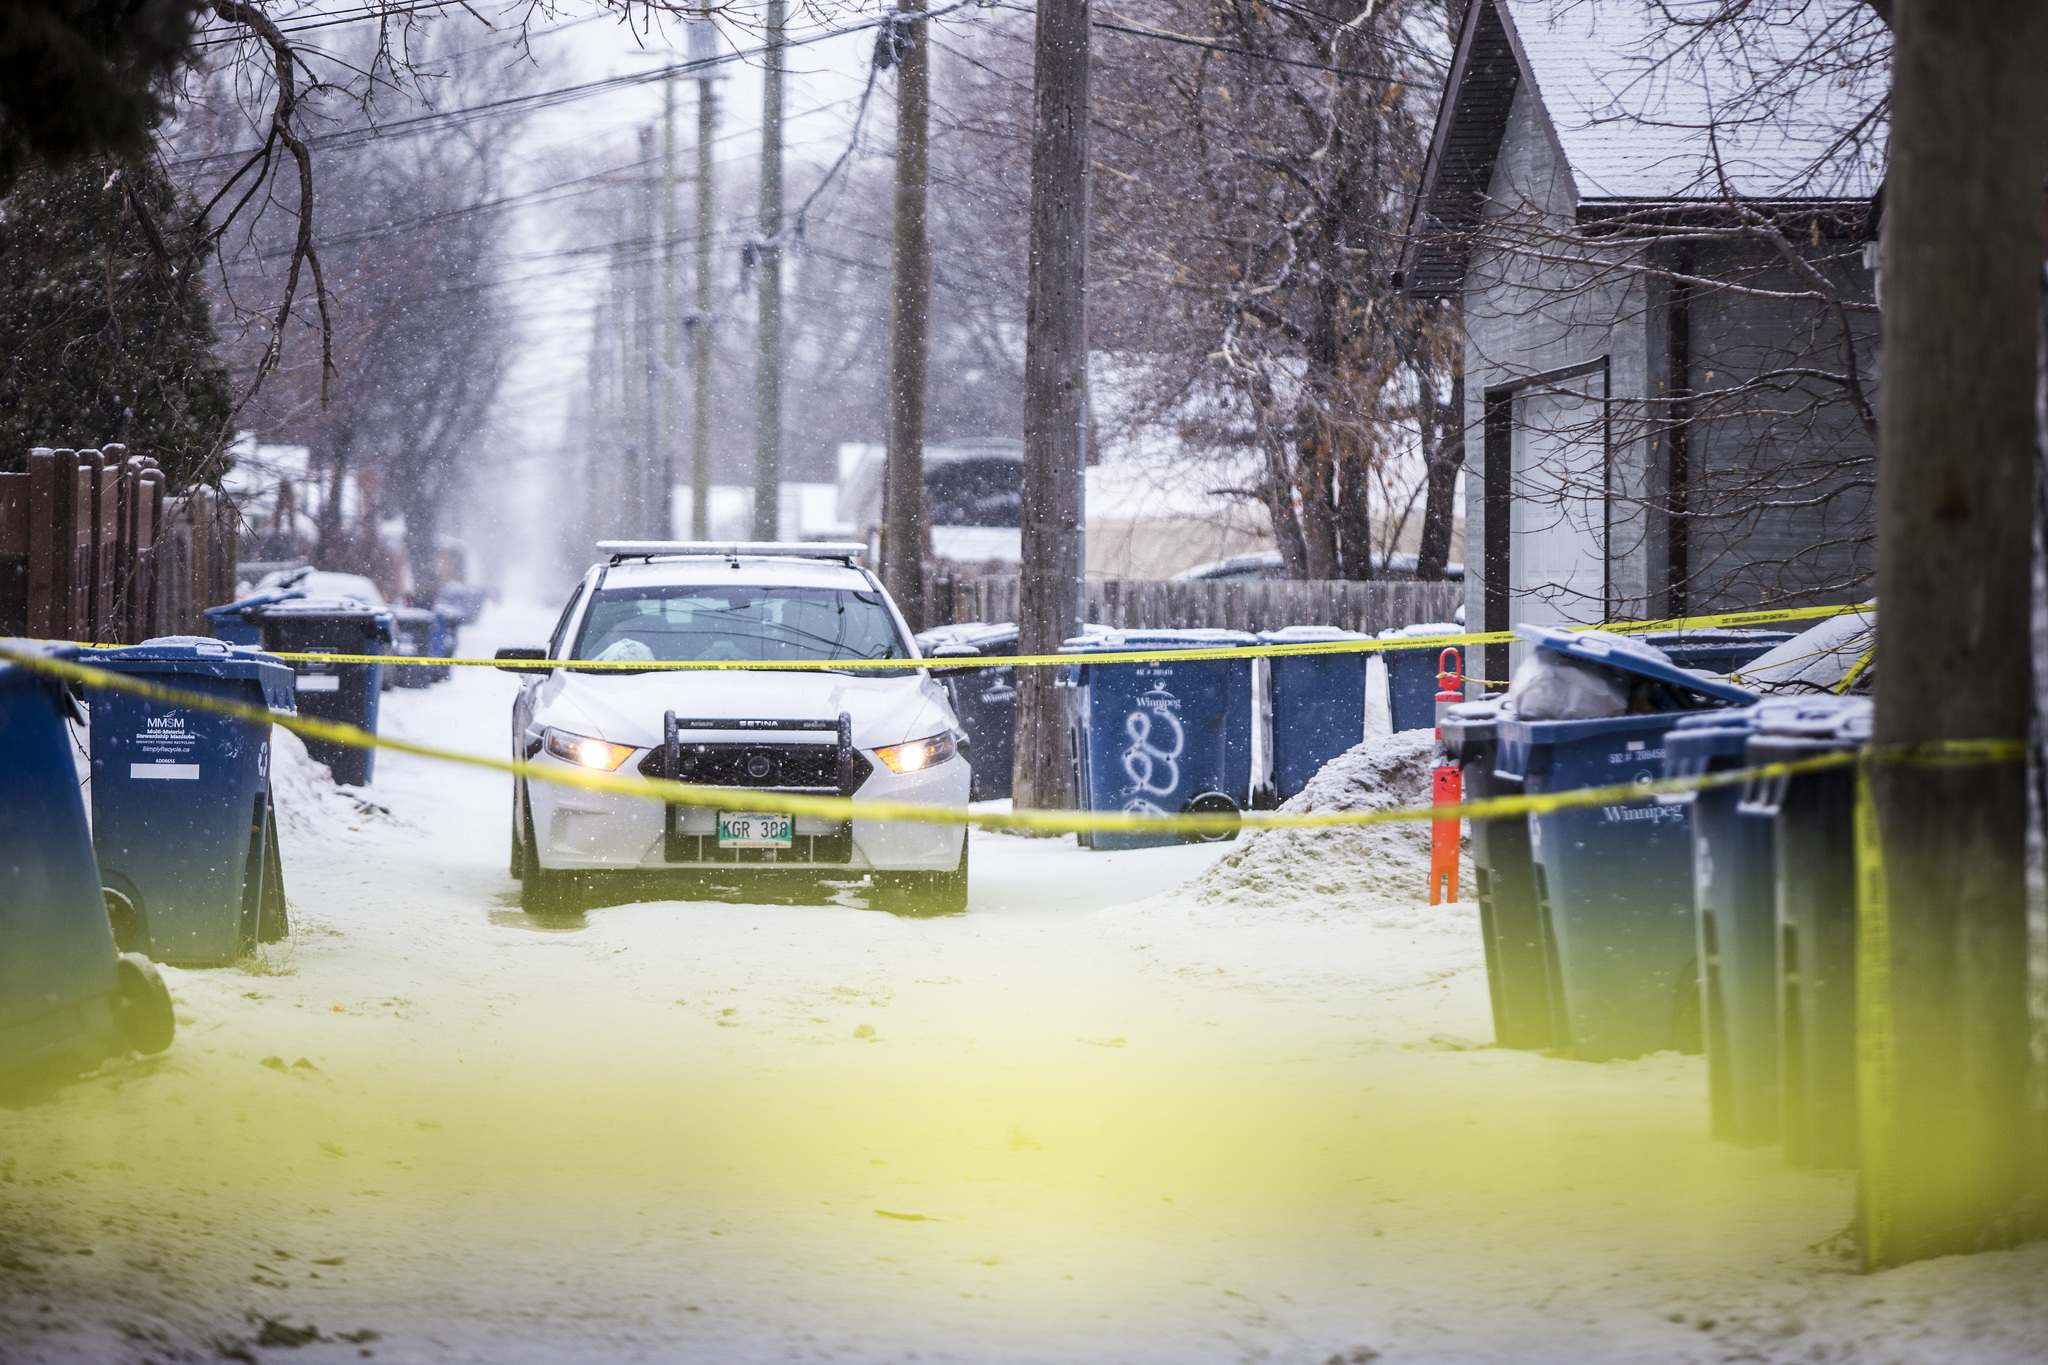 A homeowner on the 200 block of Landsdowne Avenue found the body in a garbage g bin and called police around 7:40 p.m. Wednesday. (Mikaela MacKenzie / Winnipeg Free Press)</p>